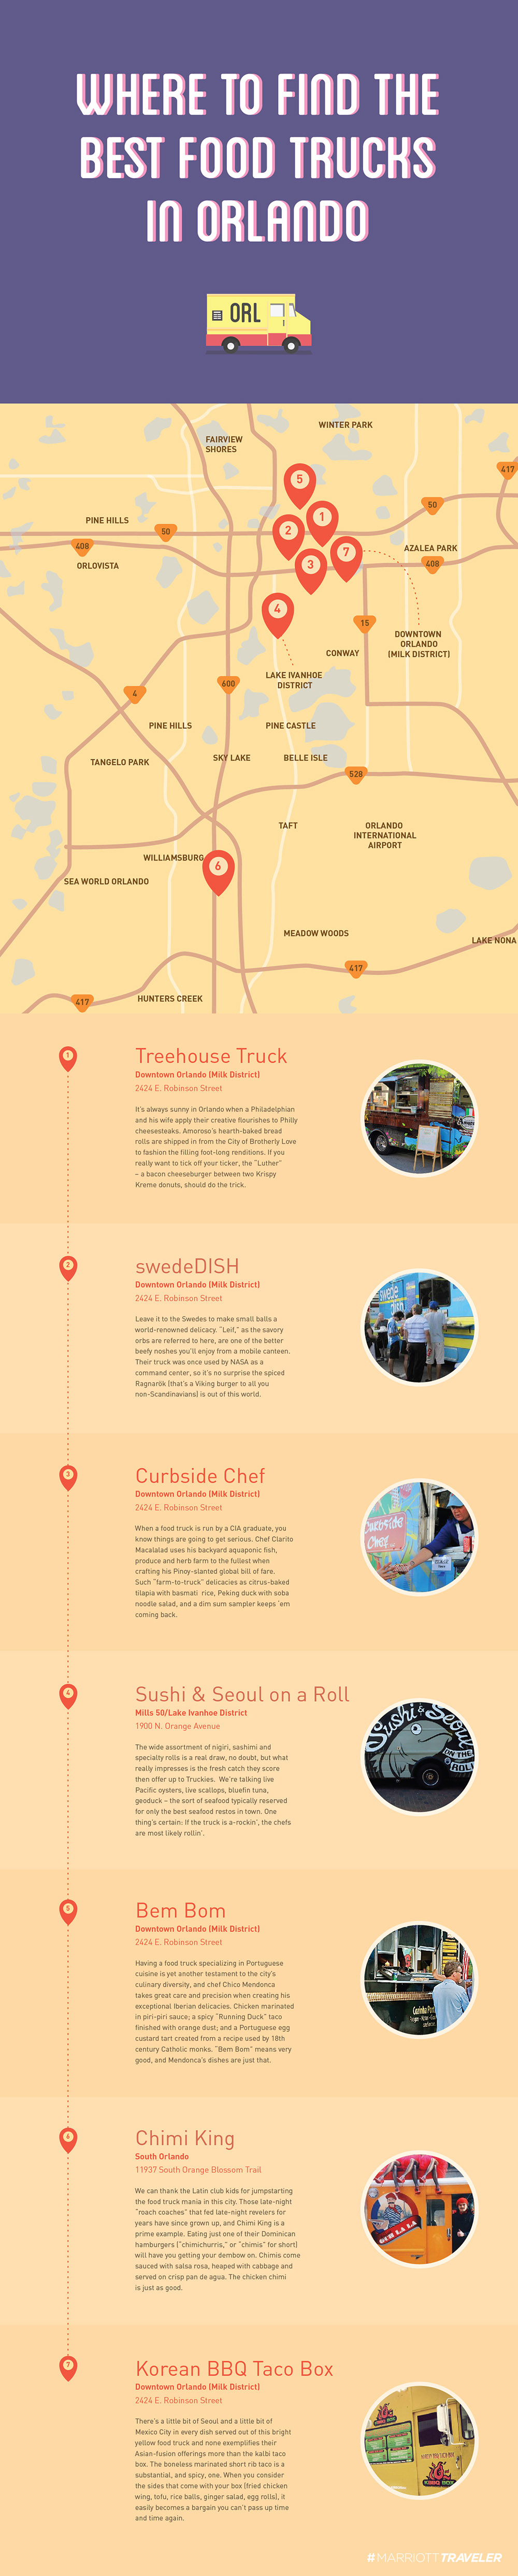 best-food-trucks-orlando-infographic-.jpg